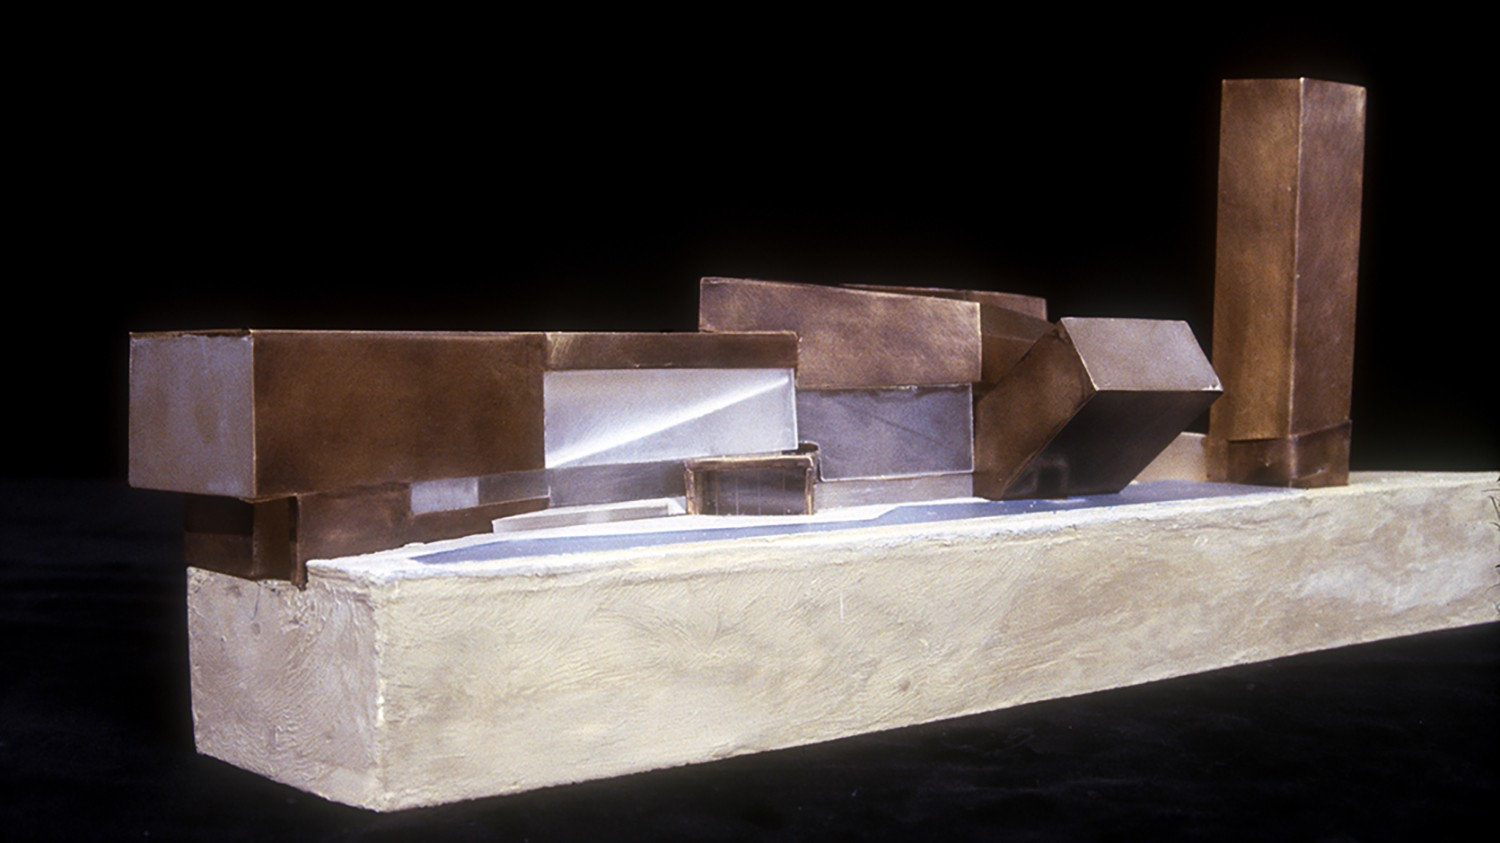 https://s3.us-east-2.amazonaws.com/steven-holl/uploads/projects/project-images/StevenHollArchitects_Confluence_lyon_model_WH.jpg